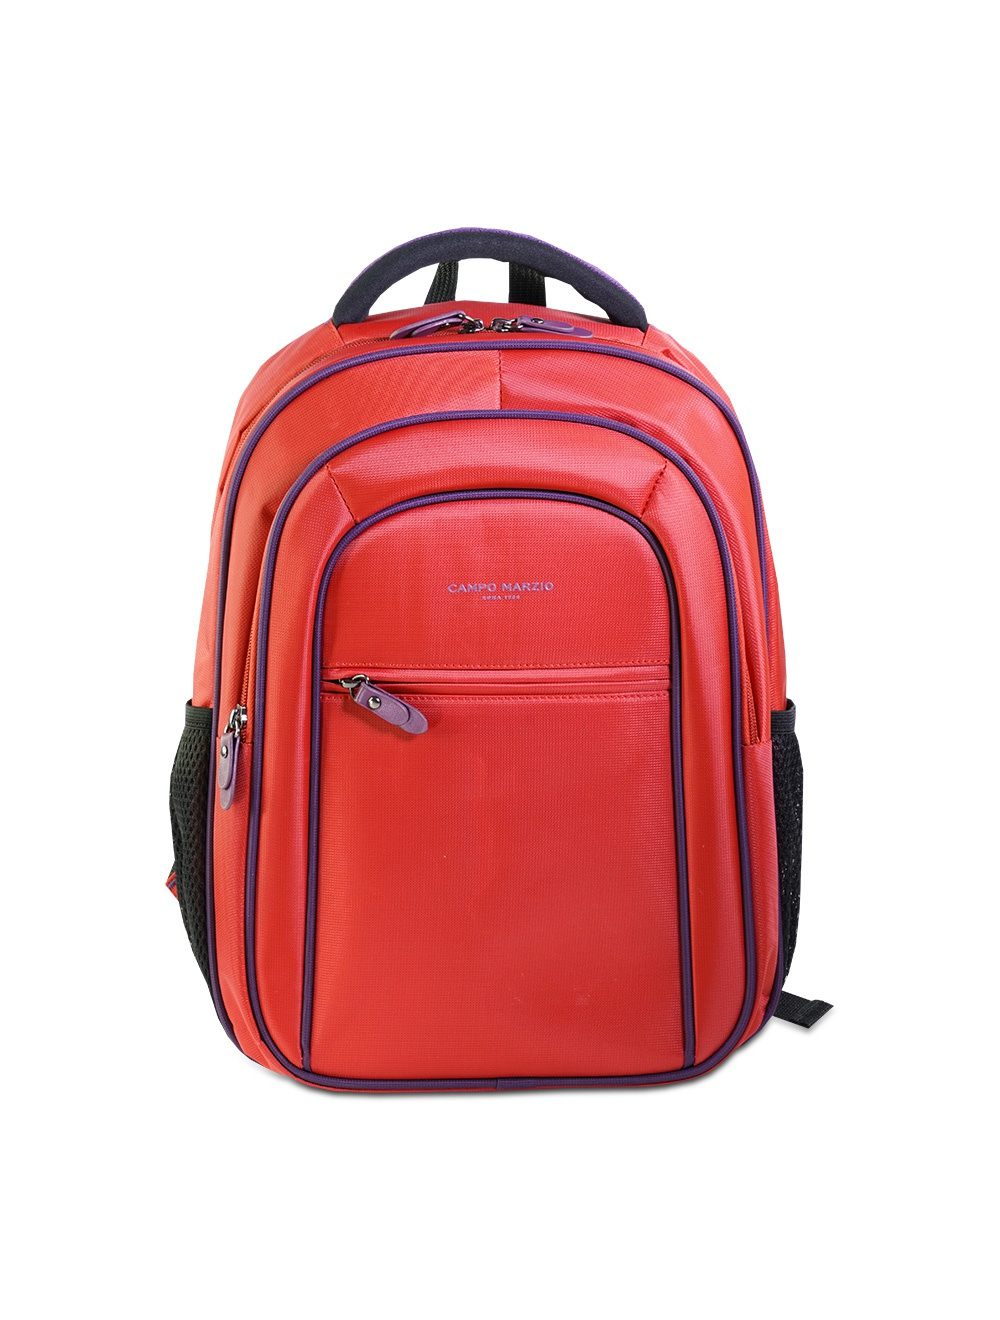 Small Nylon Backpack - Cherry Red